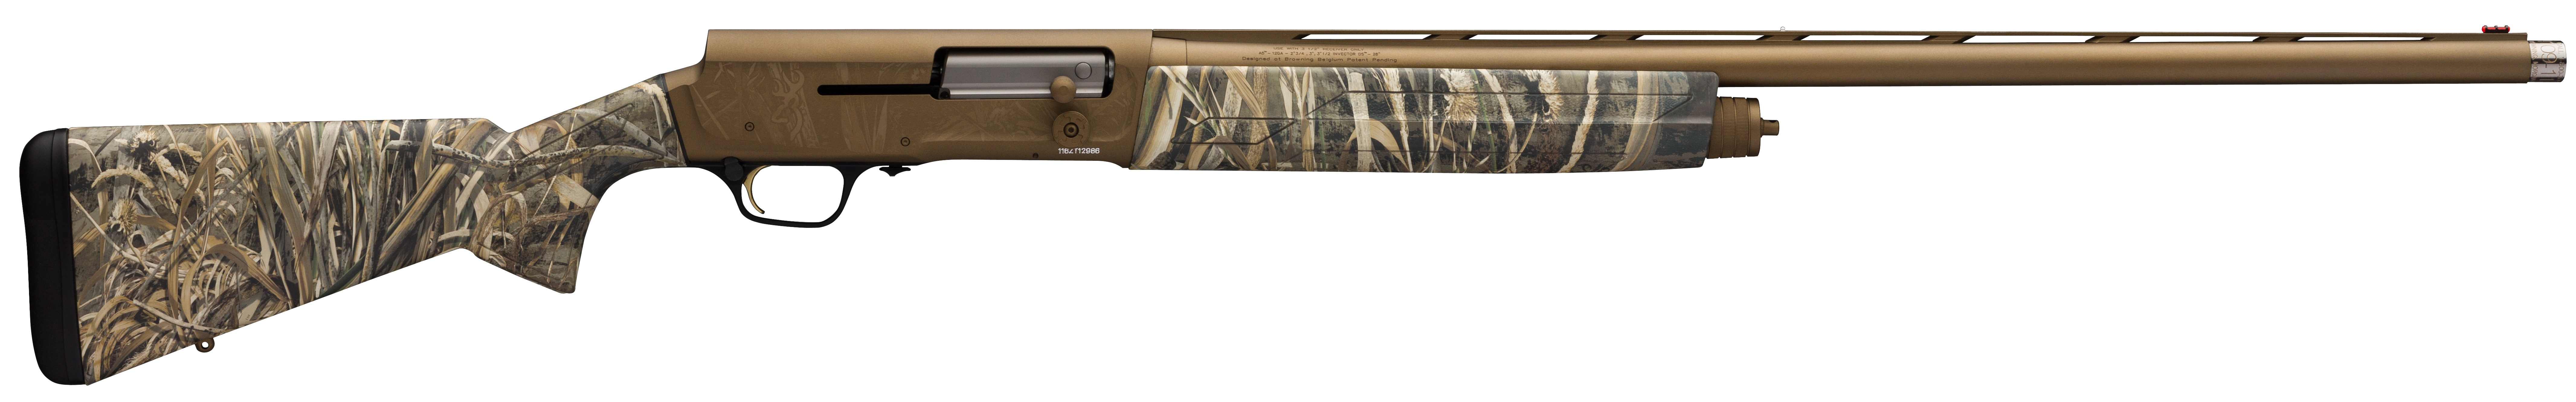 Browning A5 Wicked Wing Semi-Auto Shotgun 3.5'' 12 Gauge 28'' Burnt Bronze Cerakote - Synthetic - Realtree Max-5